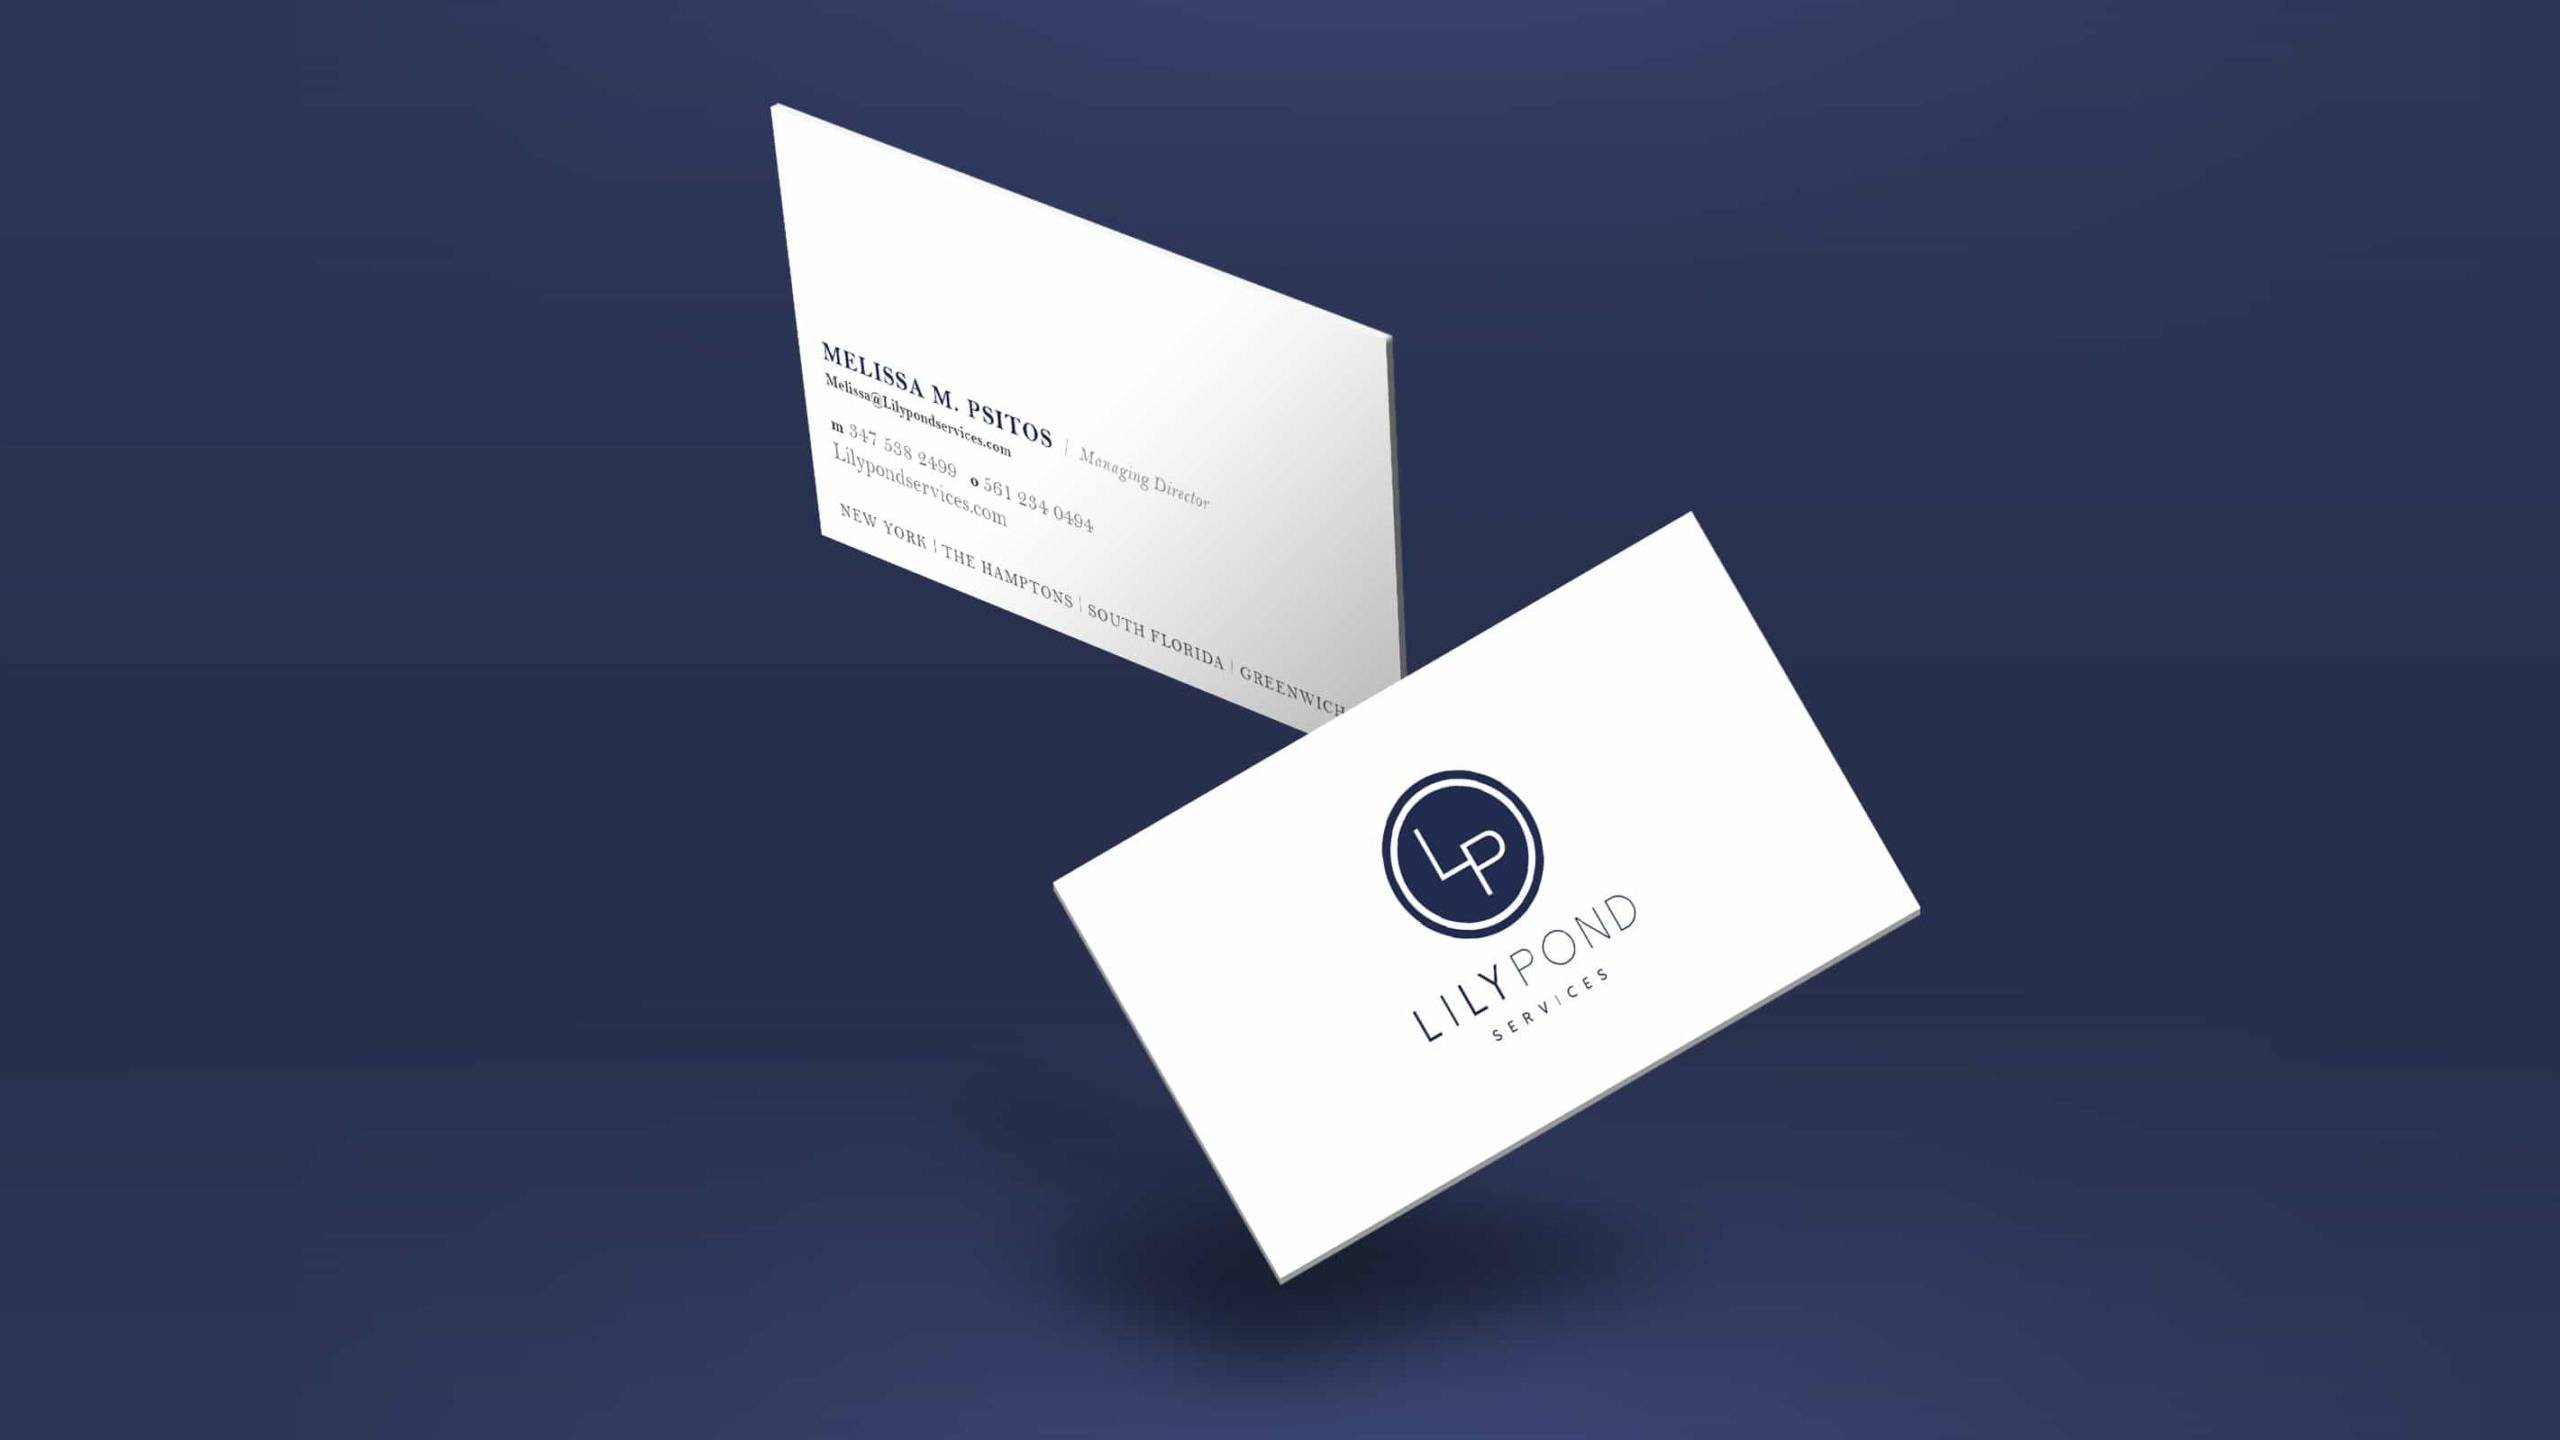 Lily Pond Services Business Cards